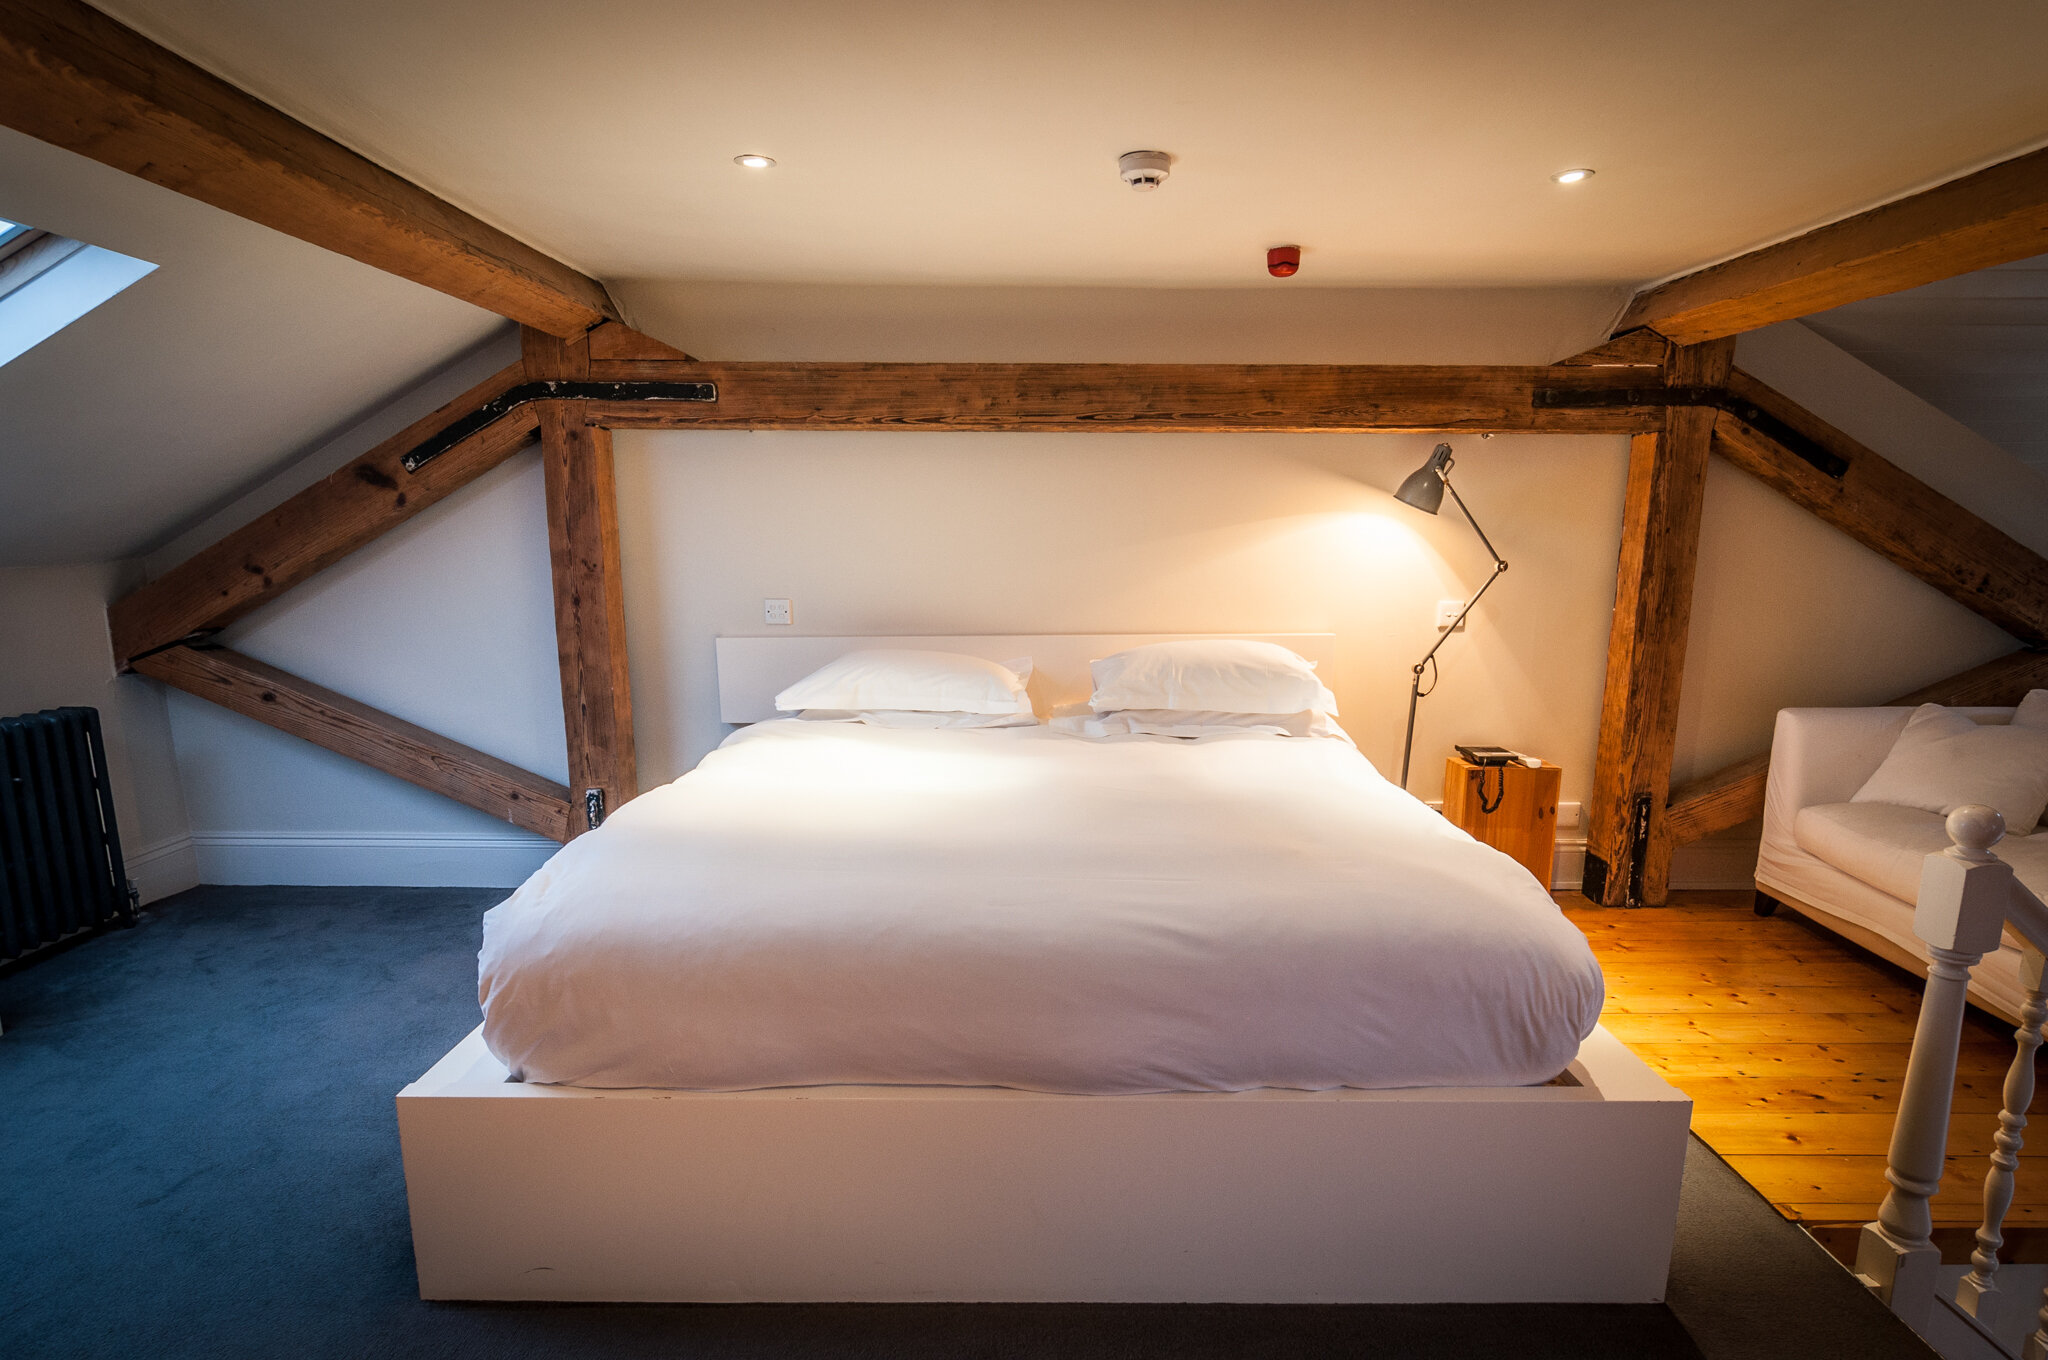 Kelly's Hotel is one of the top boutique hotels in Dublin showing room with old wood beams